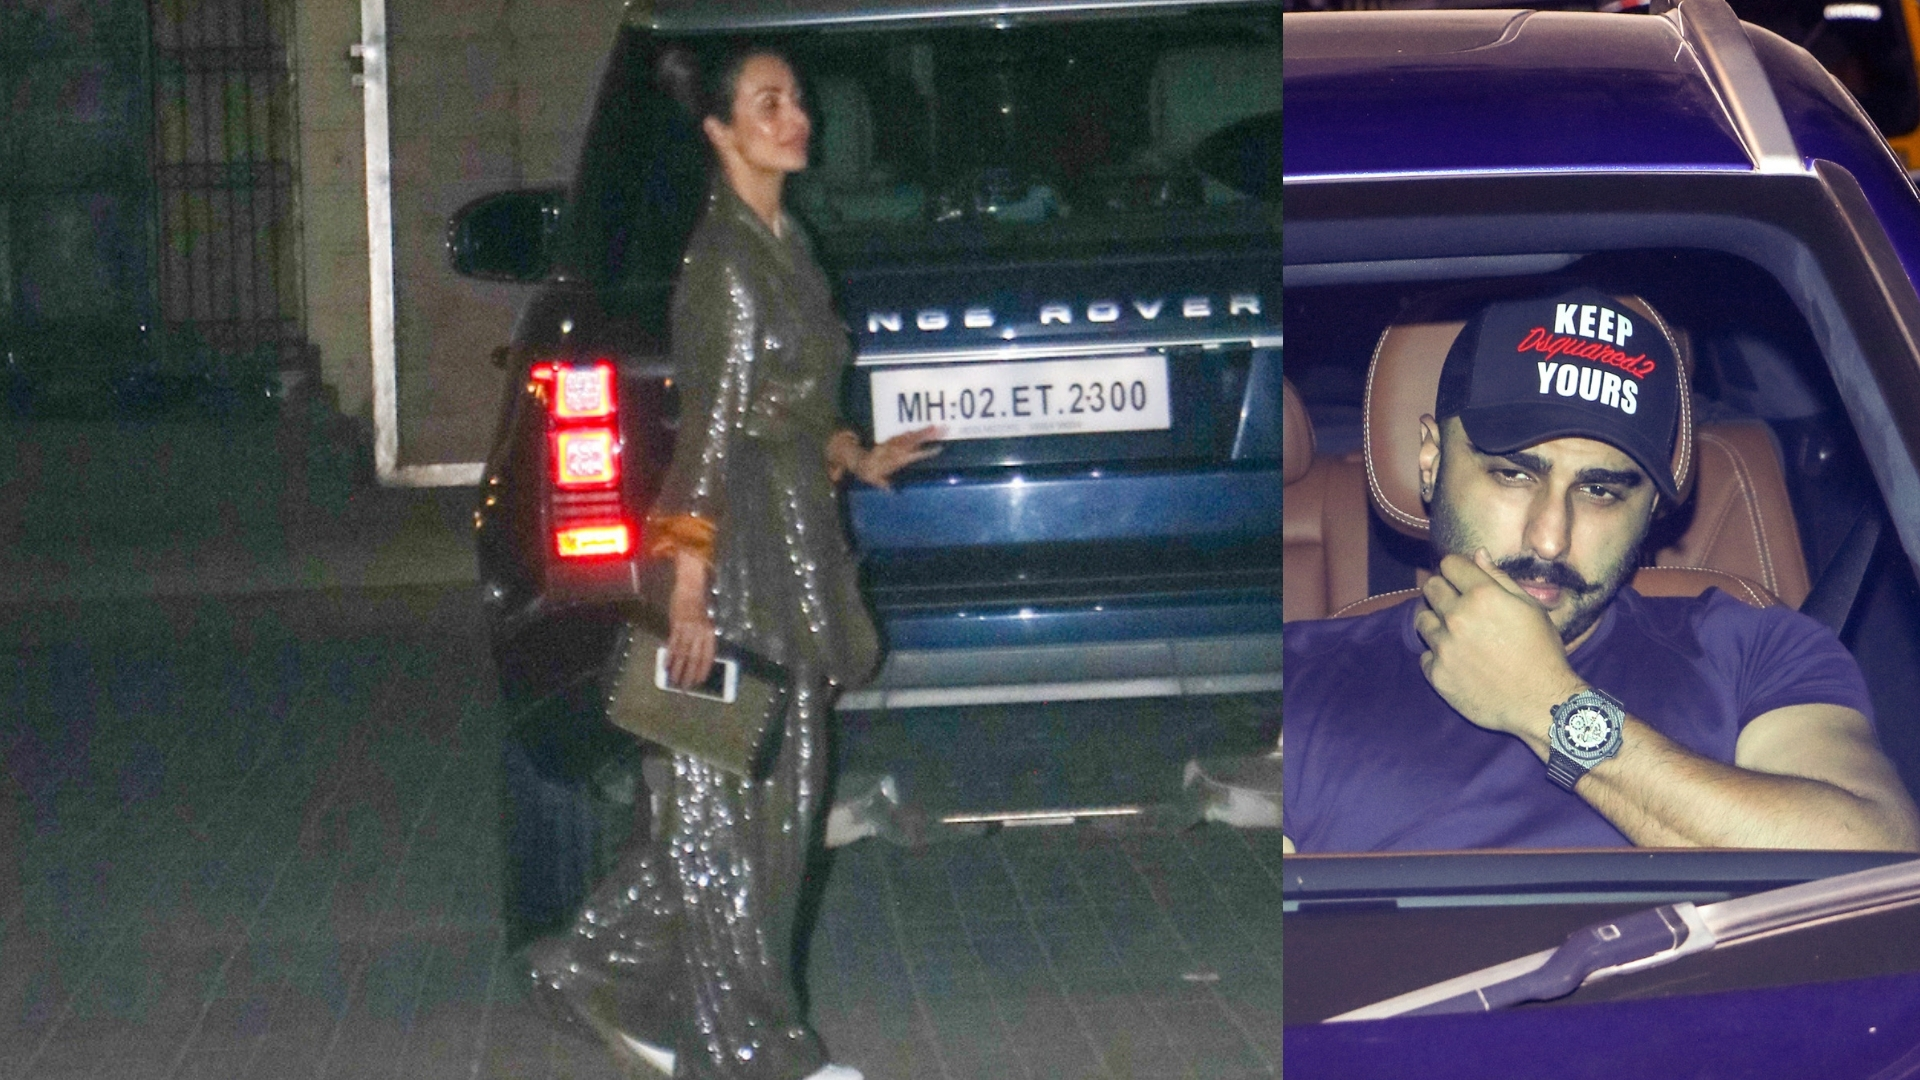 Did Malaika Arora just wear a pendant with Arjun Kapoor and her initials on it?